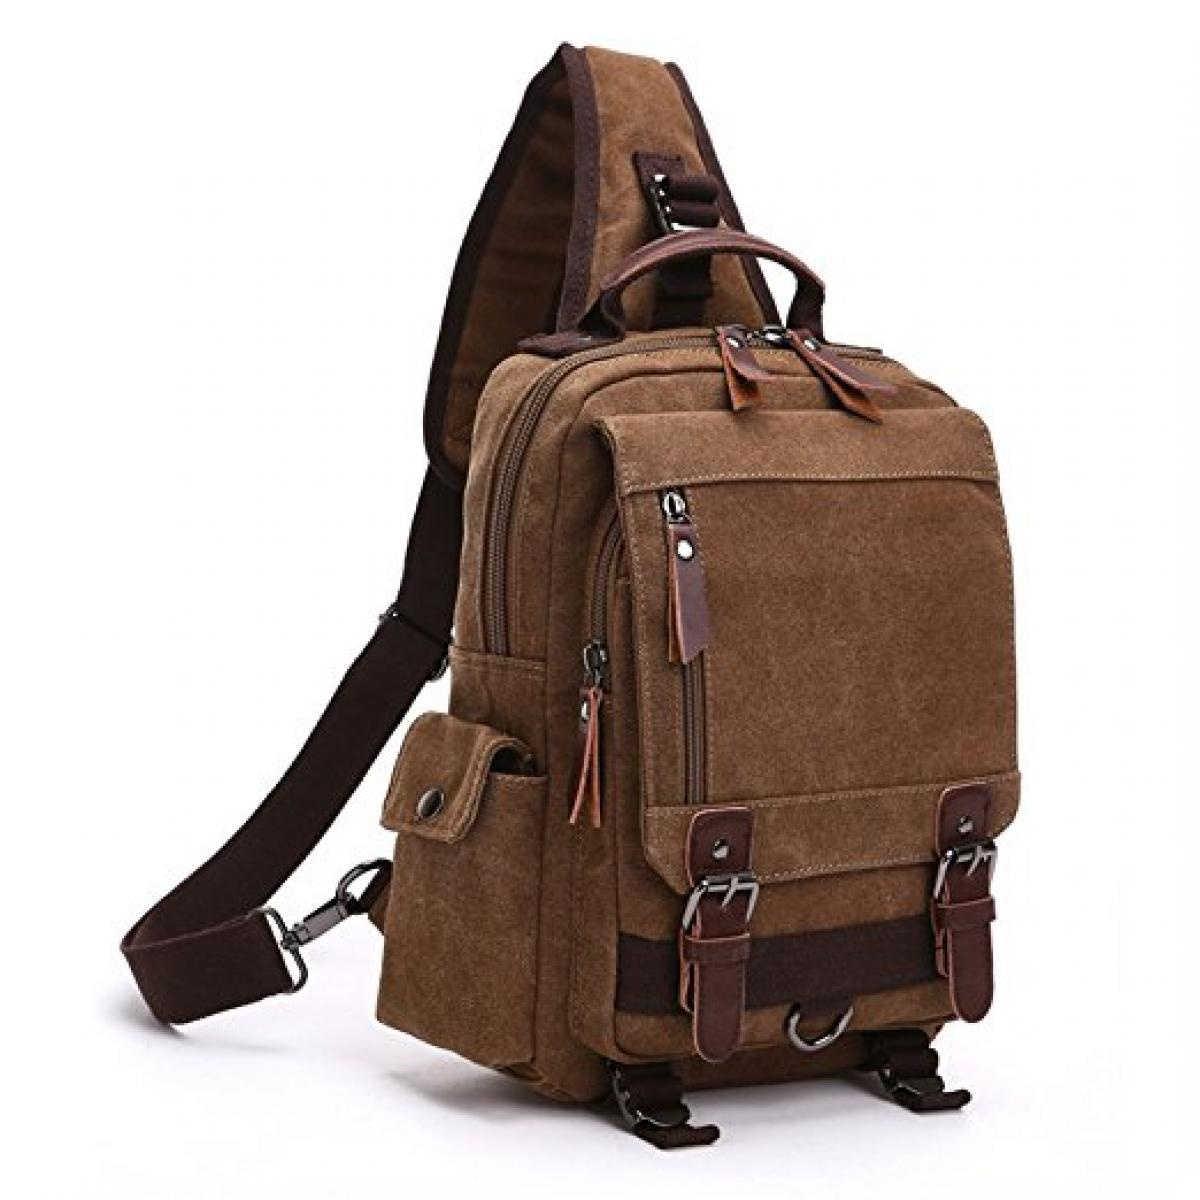 Dececos Casual Sling Bag Canvas Backpack